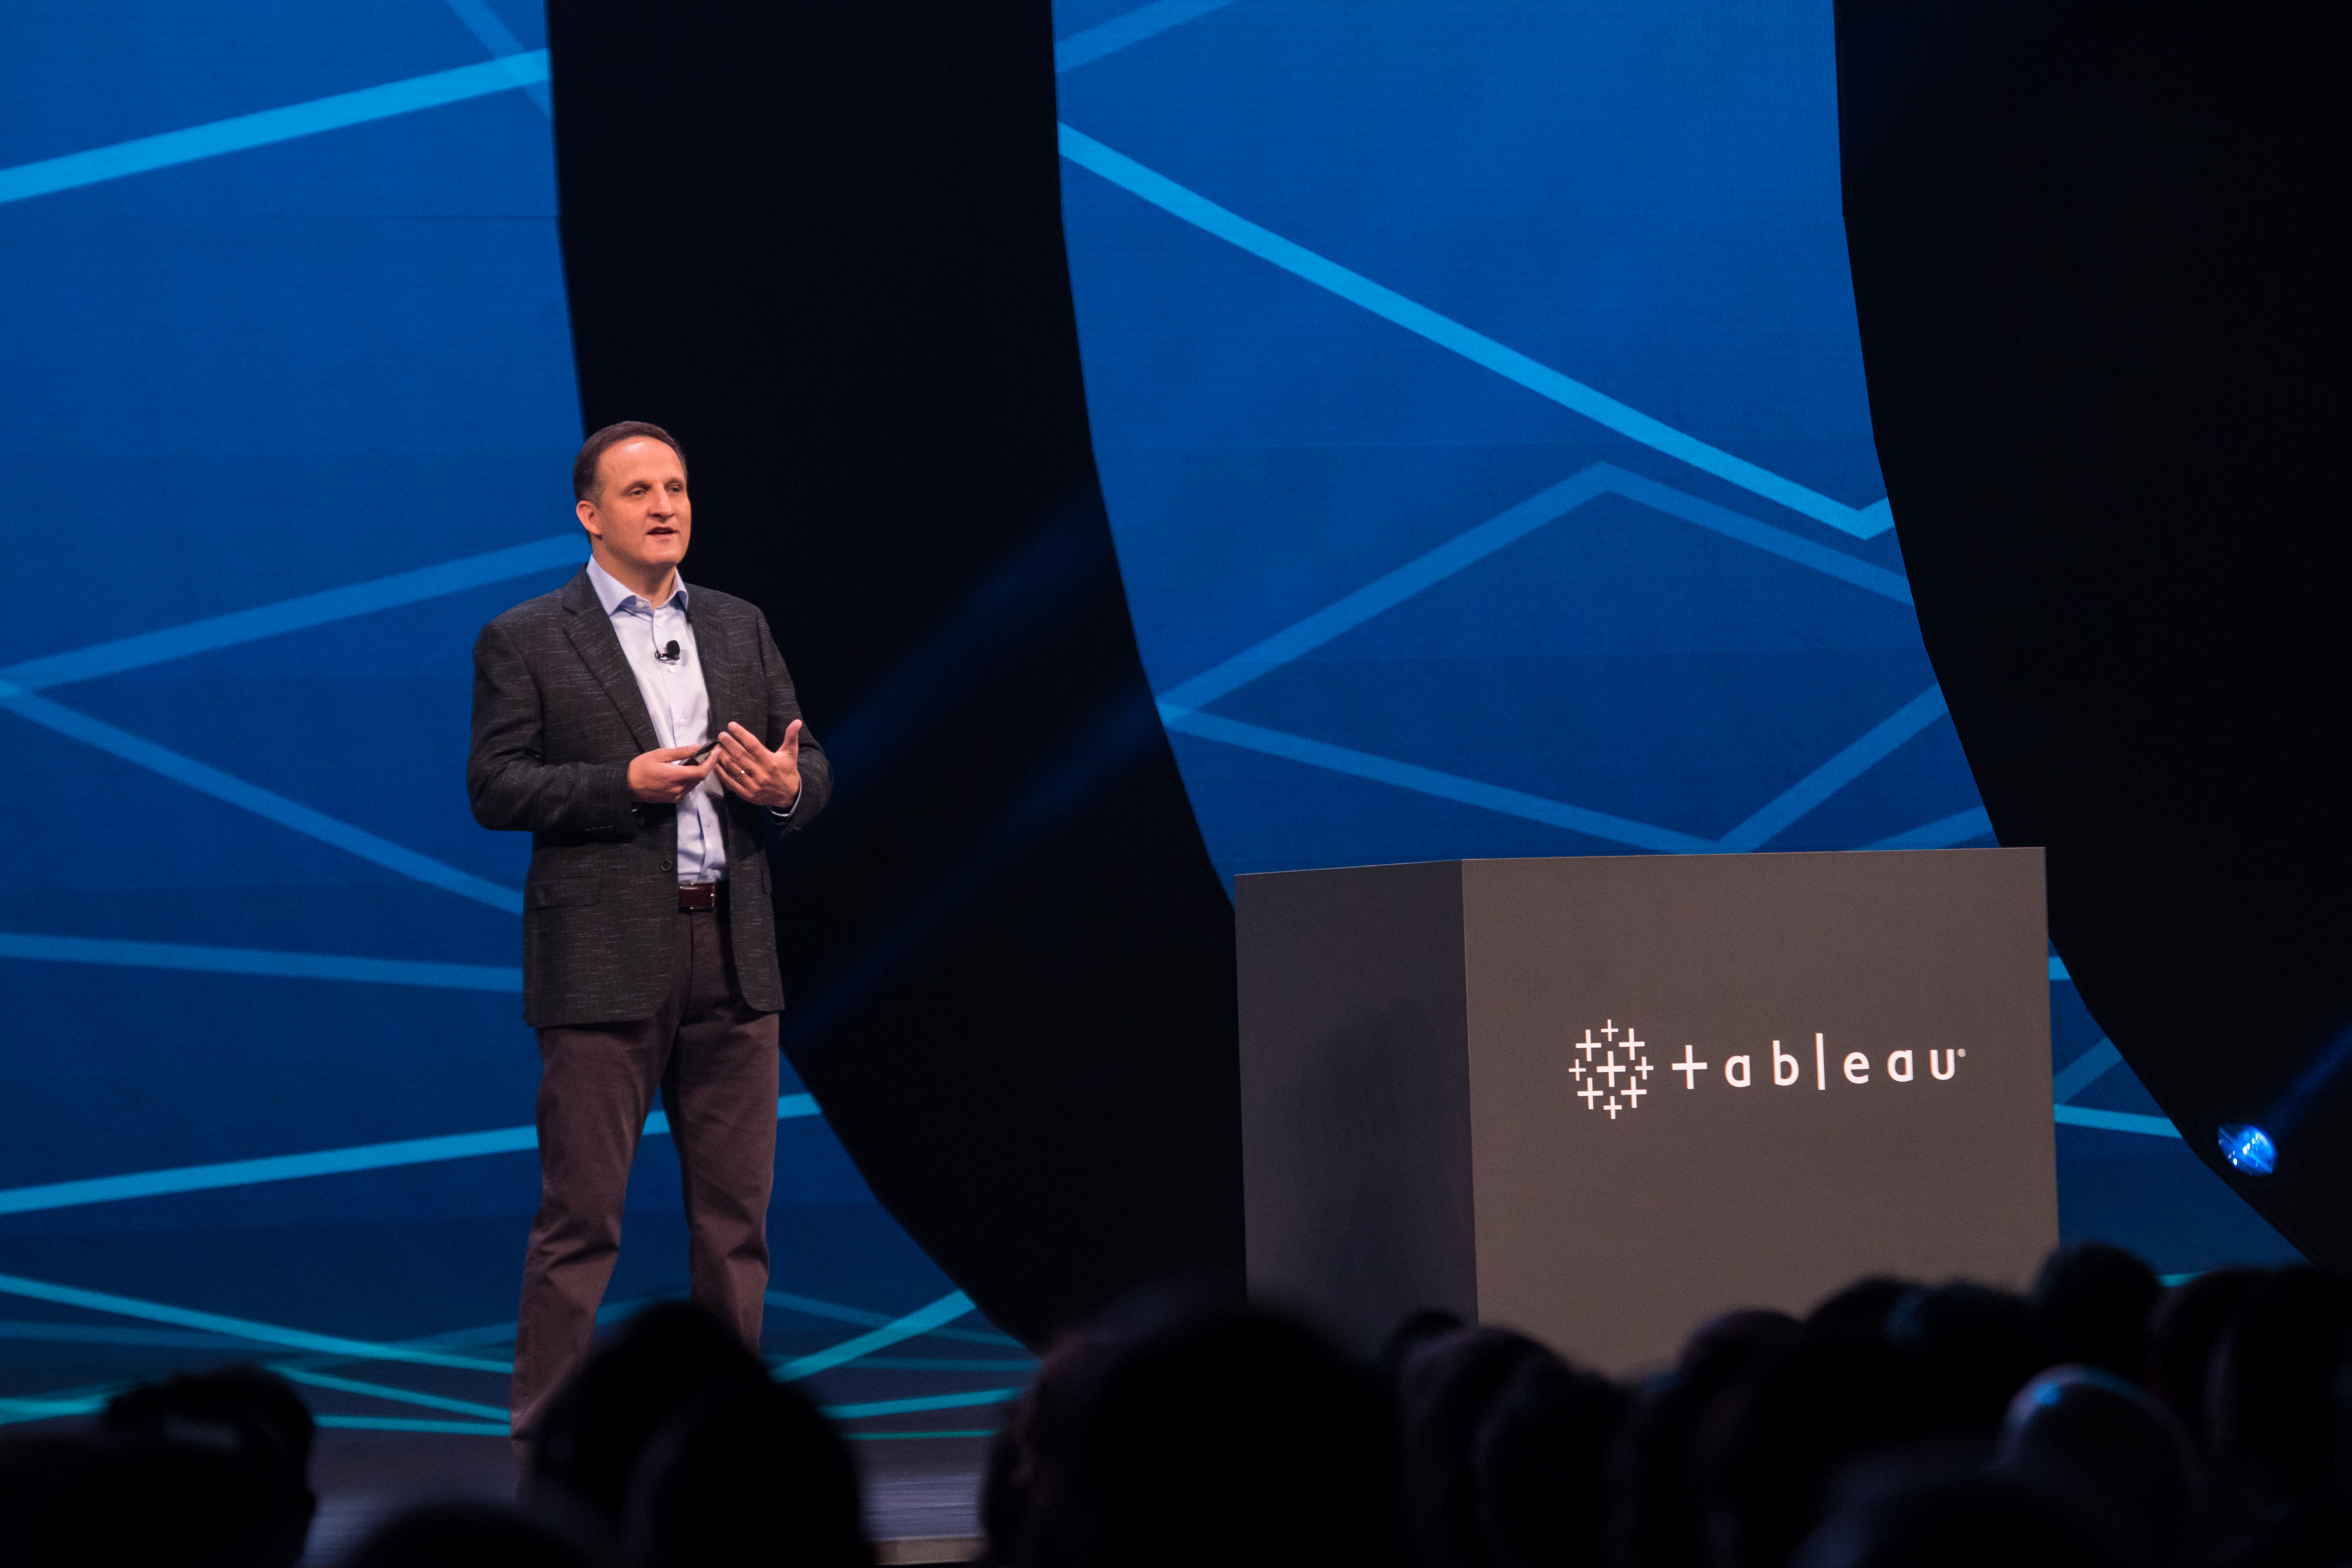 Healthcare: How Software Maker Tableau Tames Data for